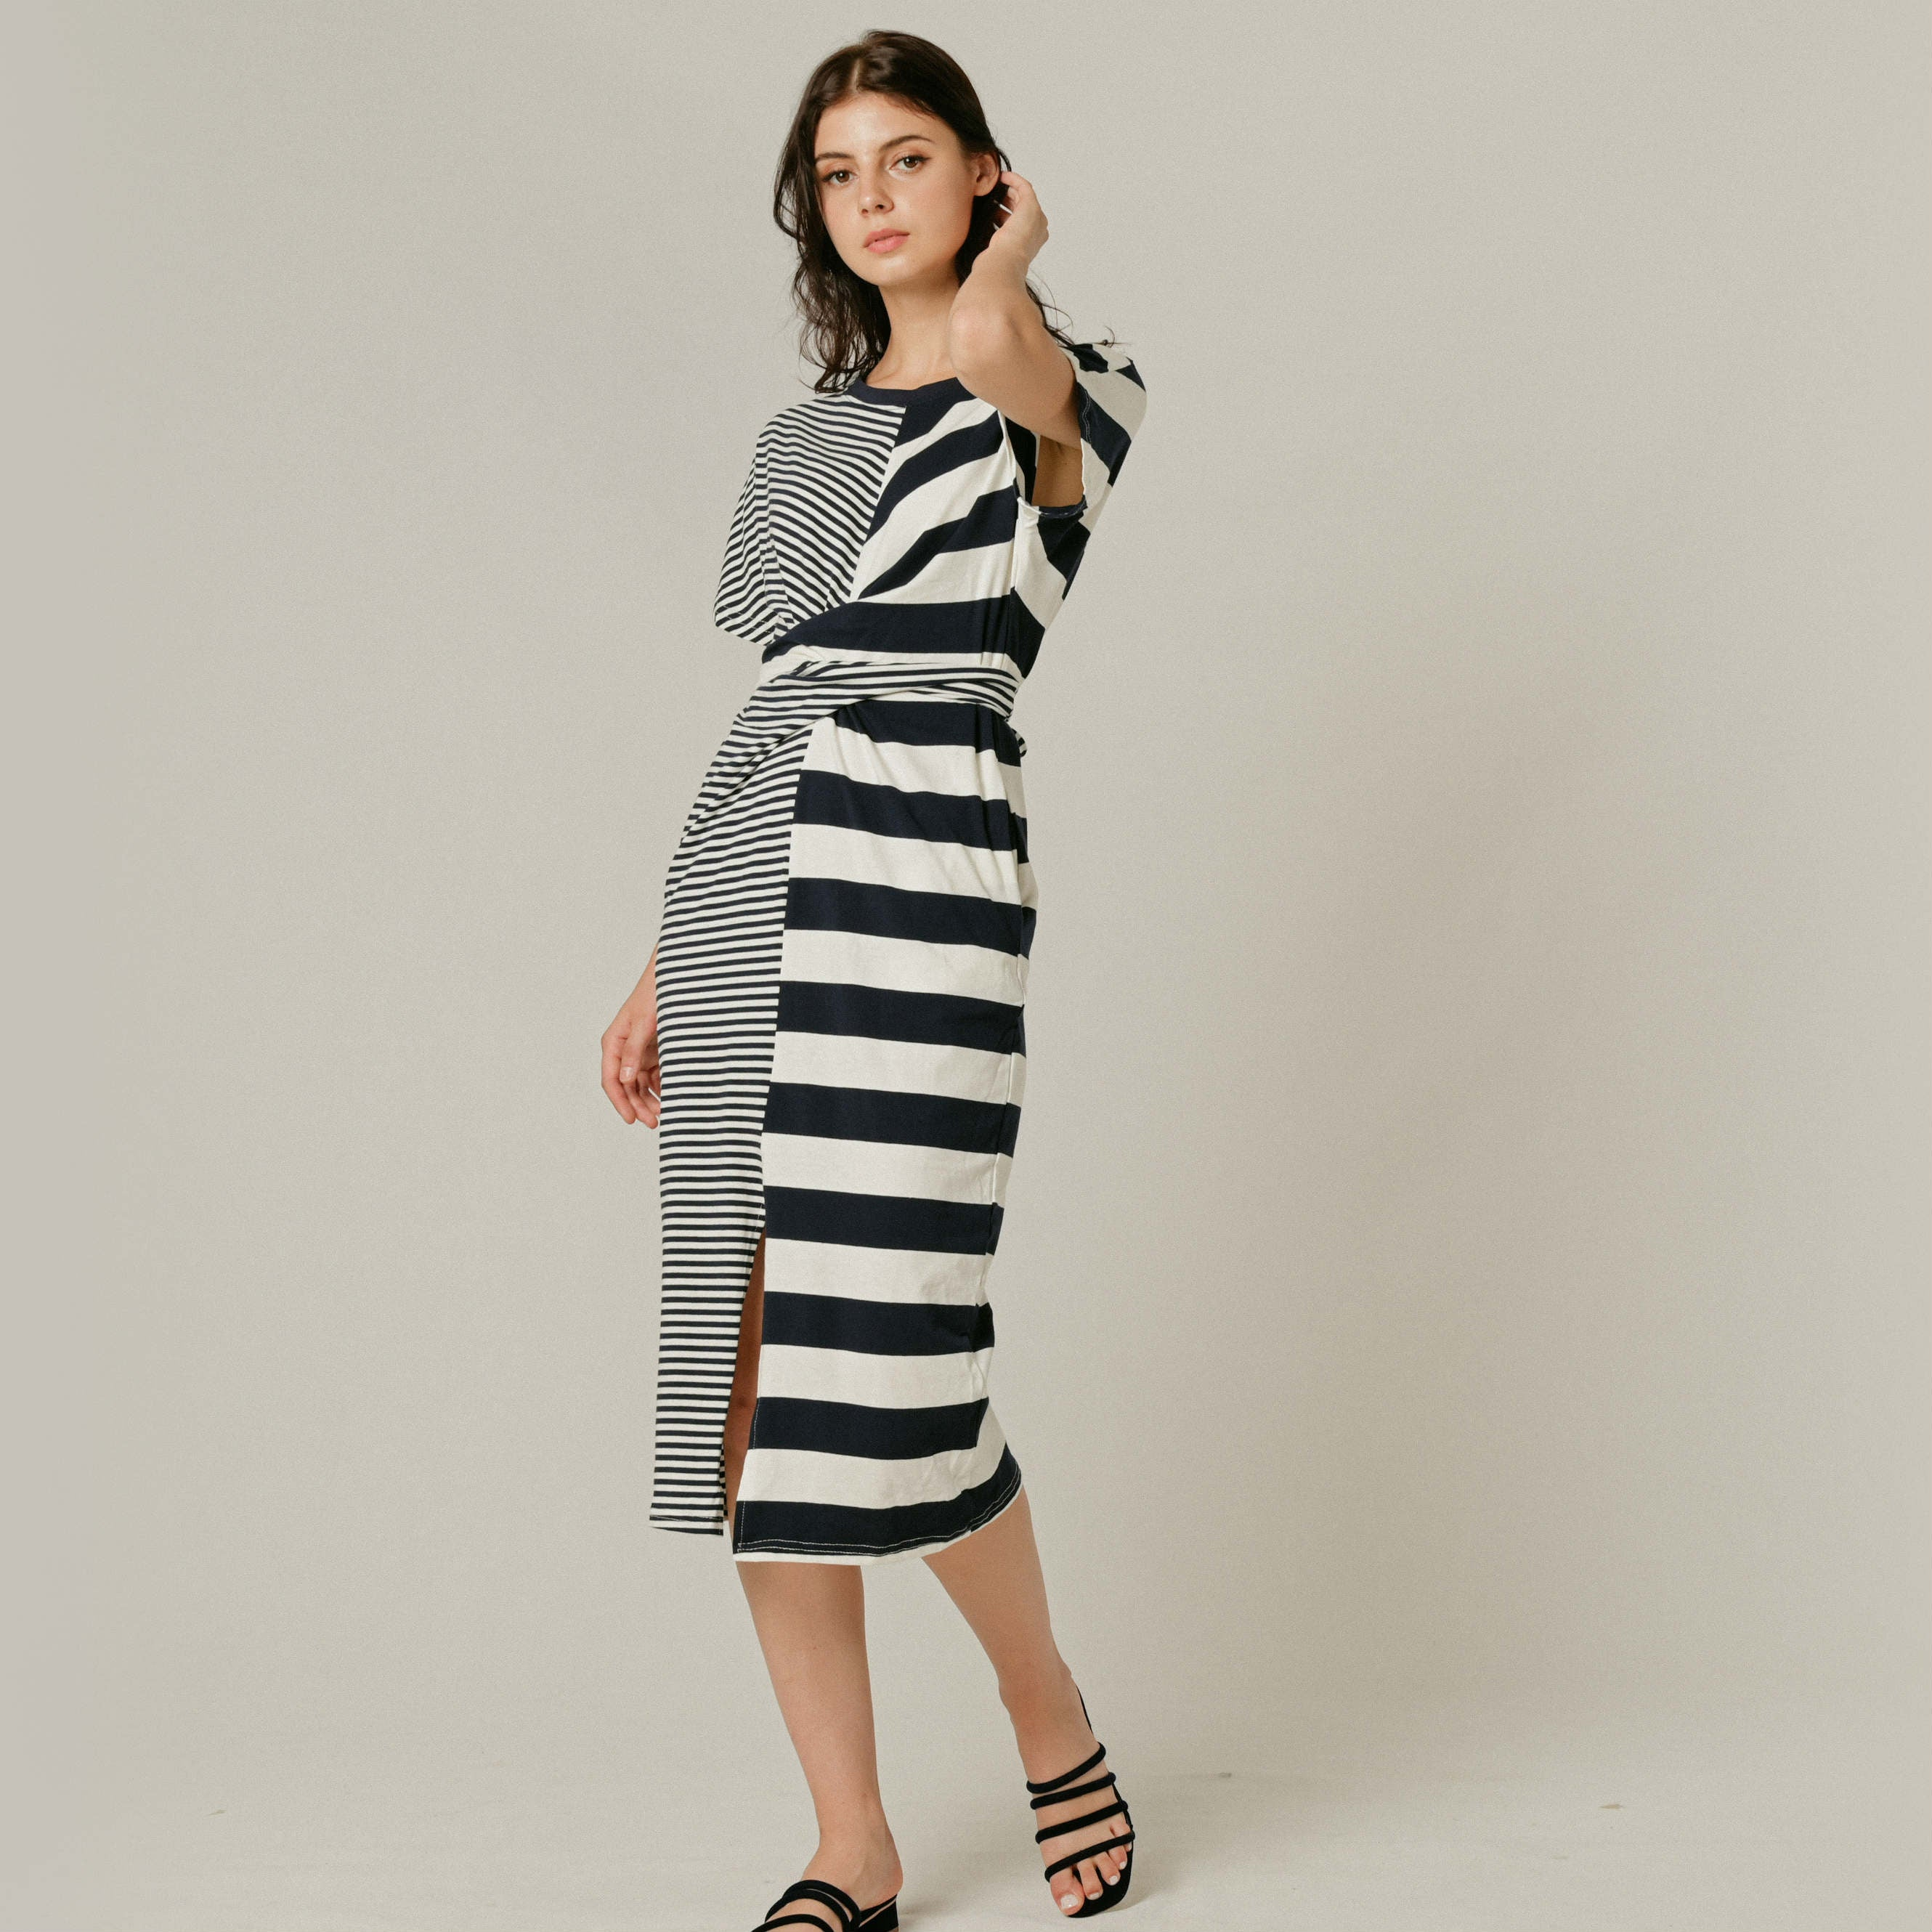 Zuria Striped Dress